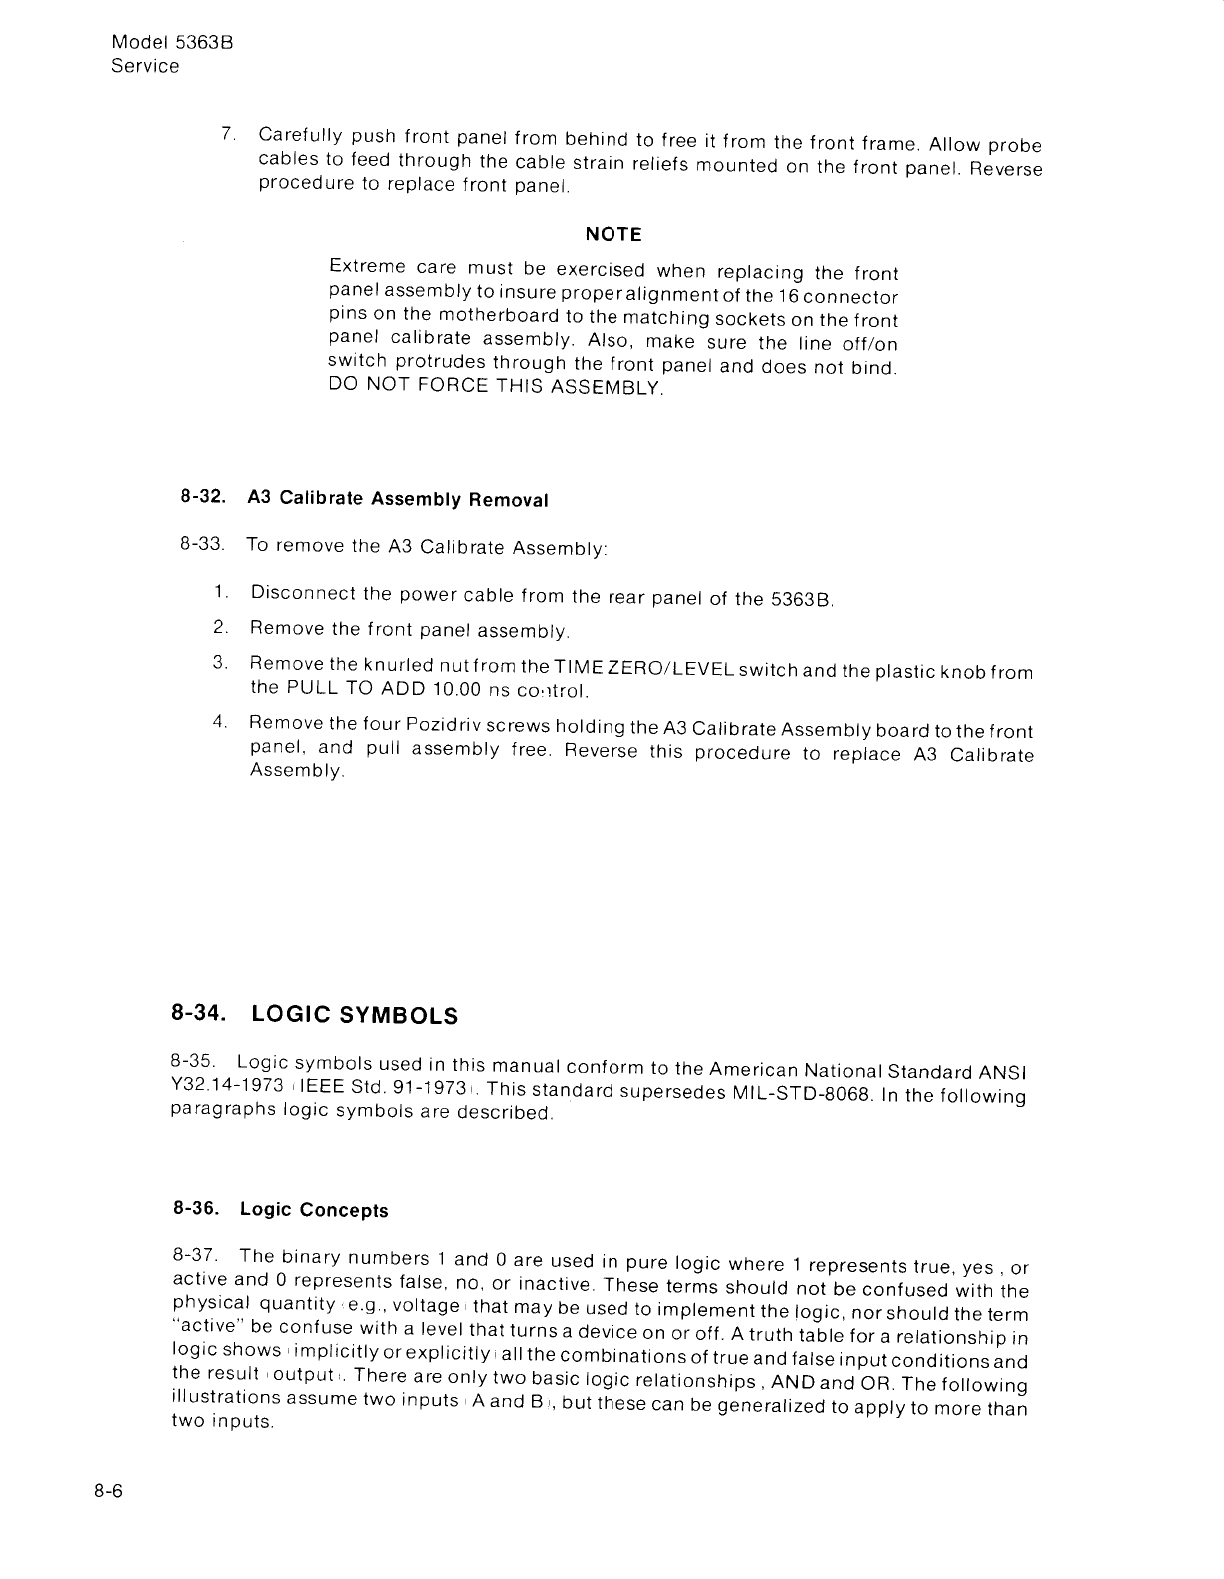 A 5363b Summary Of The Basic Logic Gates And Ieee Iec Standard Symbols If No Repair Parts Are Needed But Other Support From Agilent Is Available